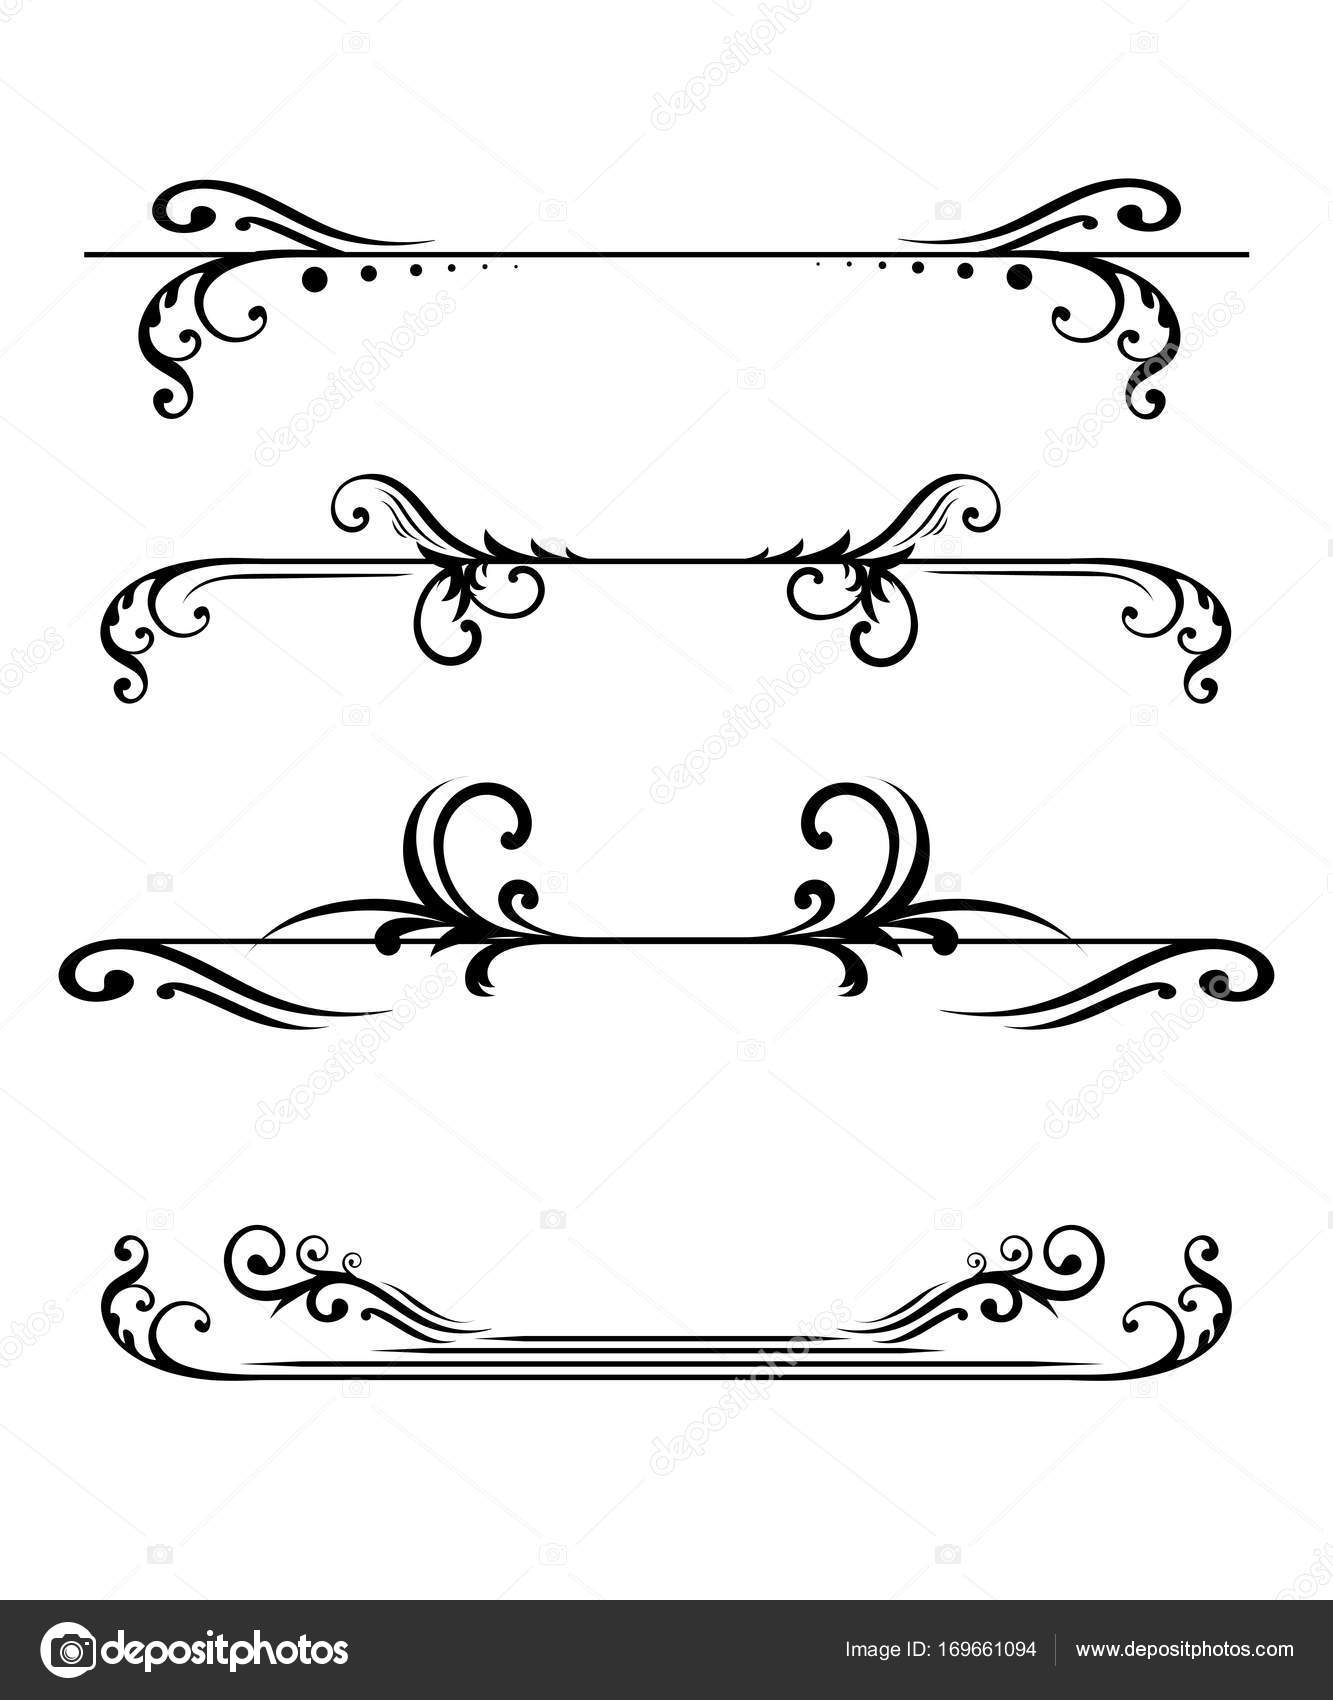 Elegant Floral Monograms Borders Design Templates Invitations Menus Labels  Wedding U2014 Stock Vector